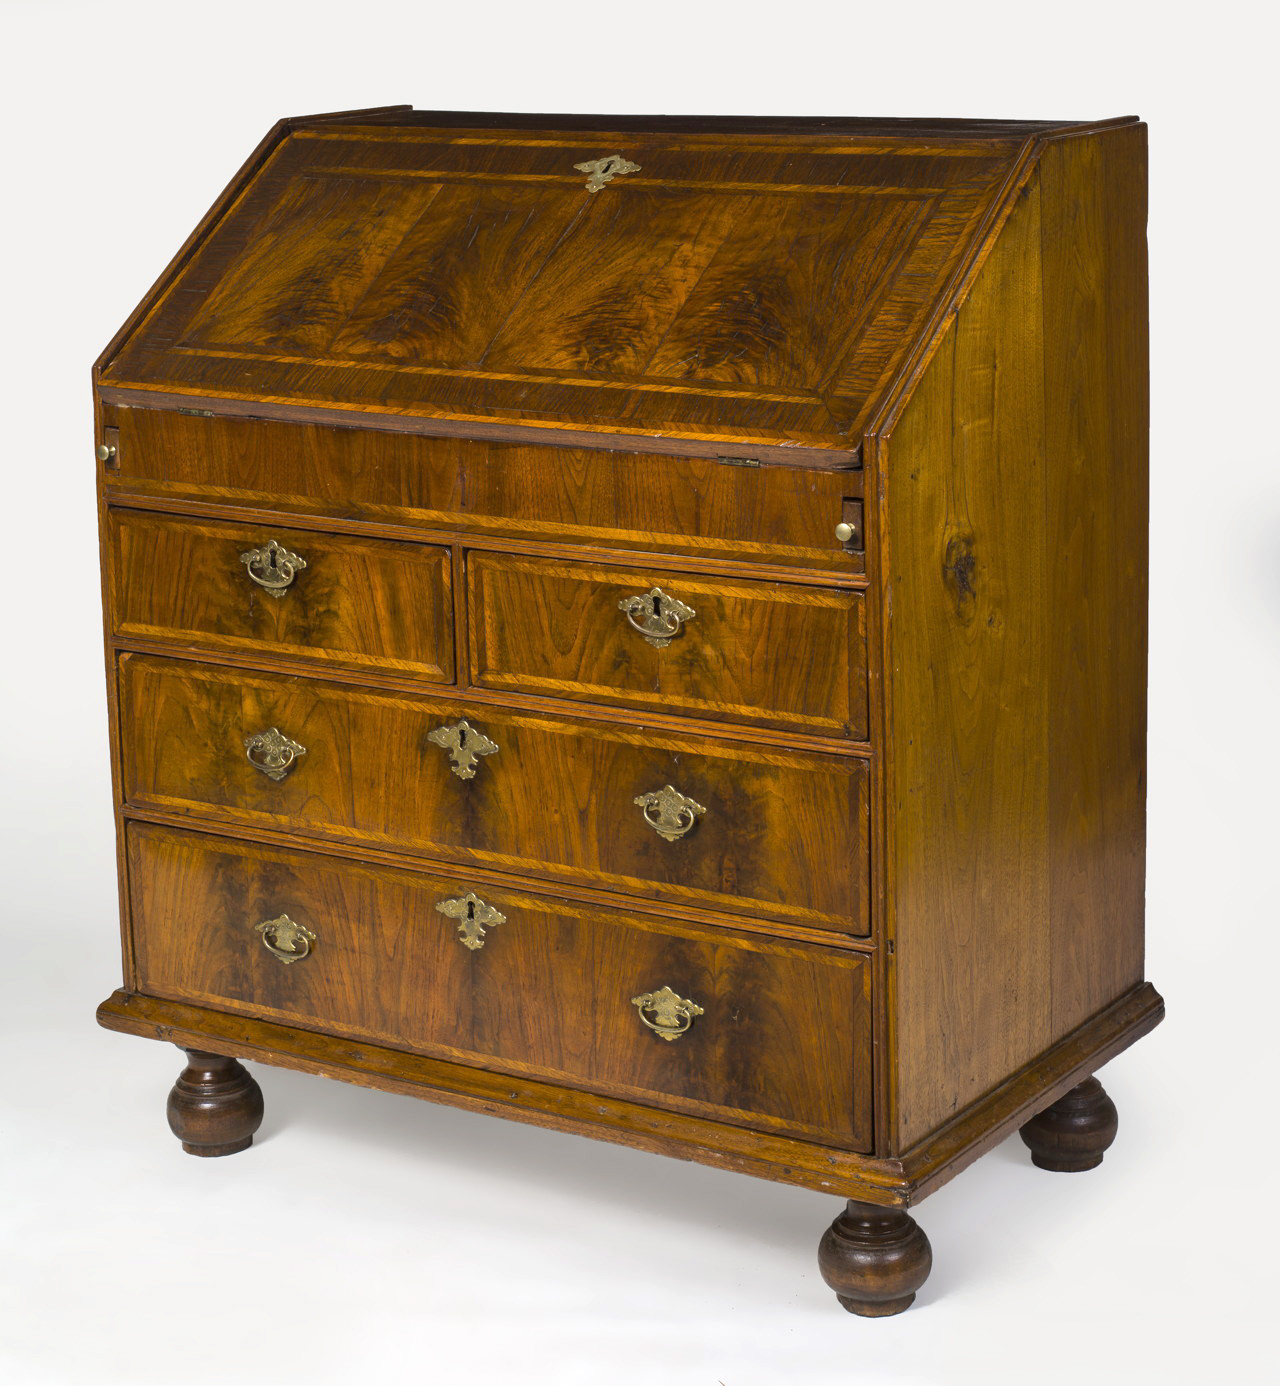 A very rare Boston area (c.1715-20) walnut and walnut-veneered desk